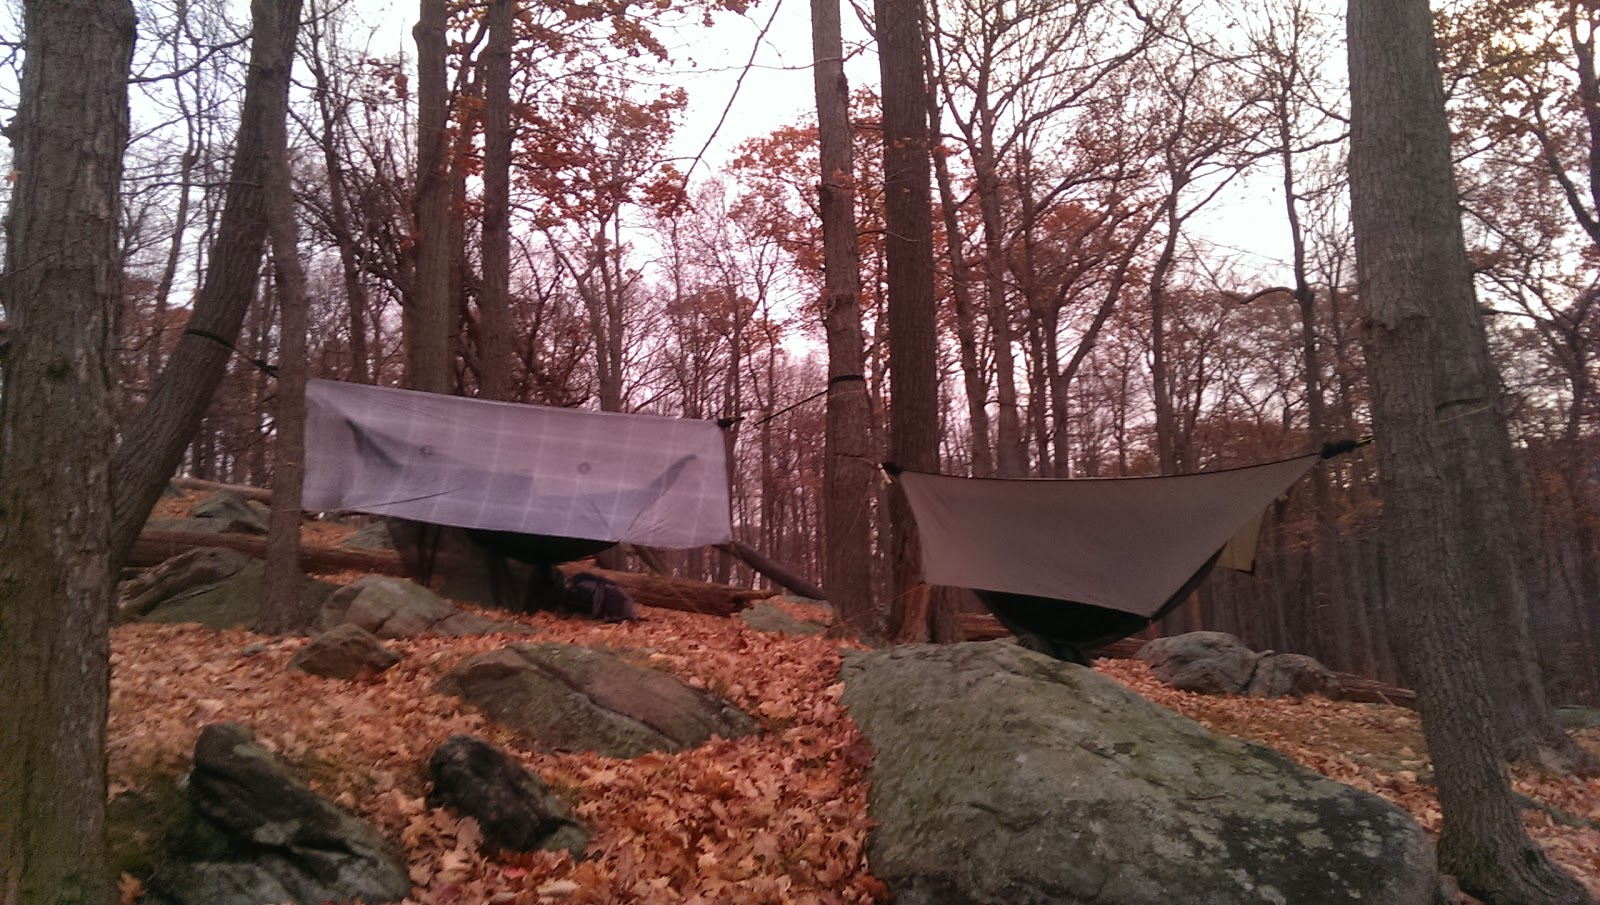 after the trip i decided that i wanted my own setup for future trips  i u0027m hoping the  forts offered by the hammock will convince my future wife to spend     four bar design  diy hammock gear  rh   fourbardesign